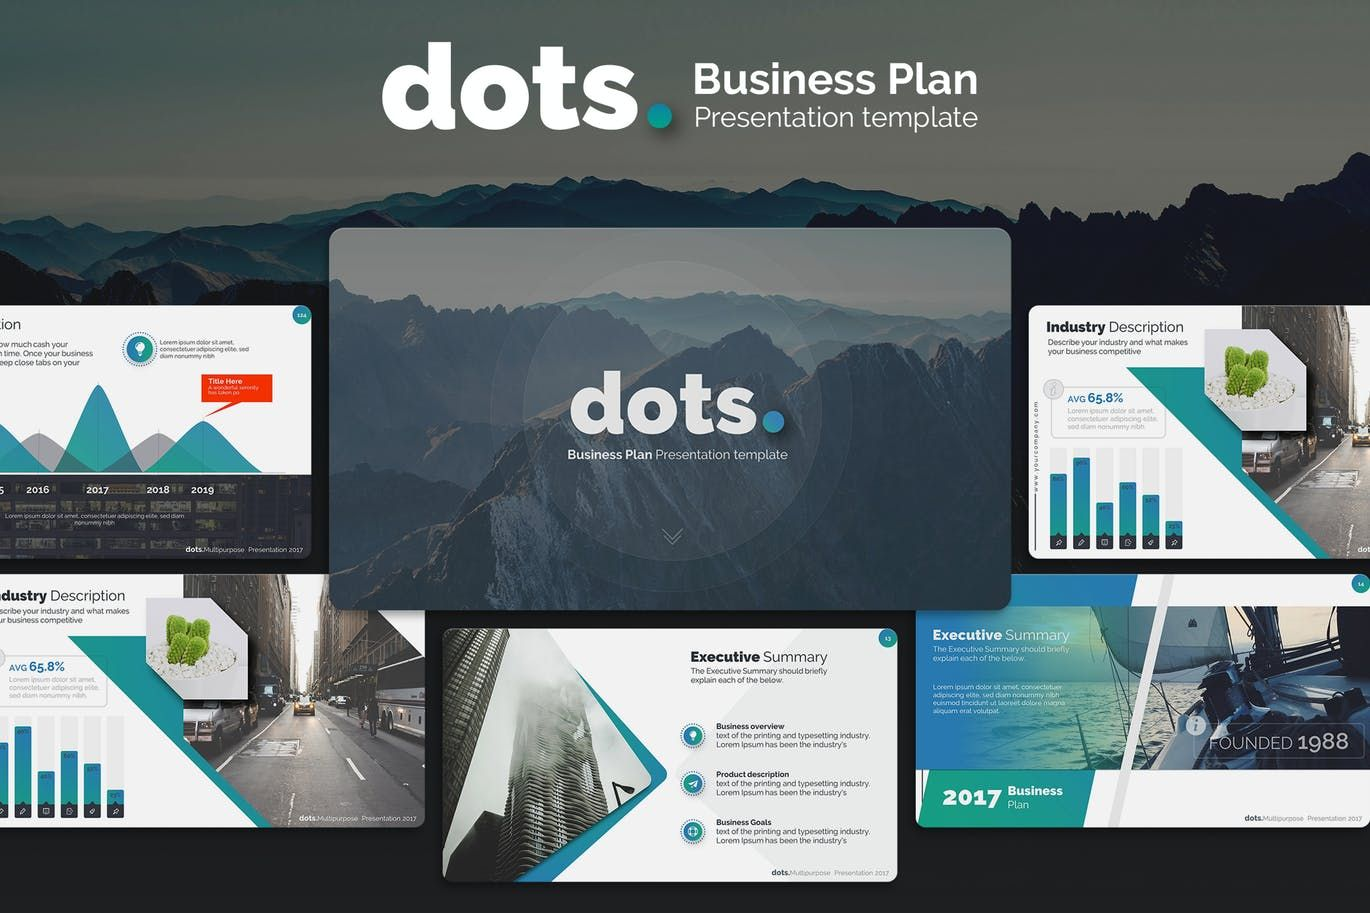 Dots Business Plan Powerpoint Template By Premast On Envato Elements Business Plan Presentation Business Planning Creative Business Plan